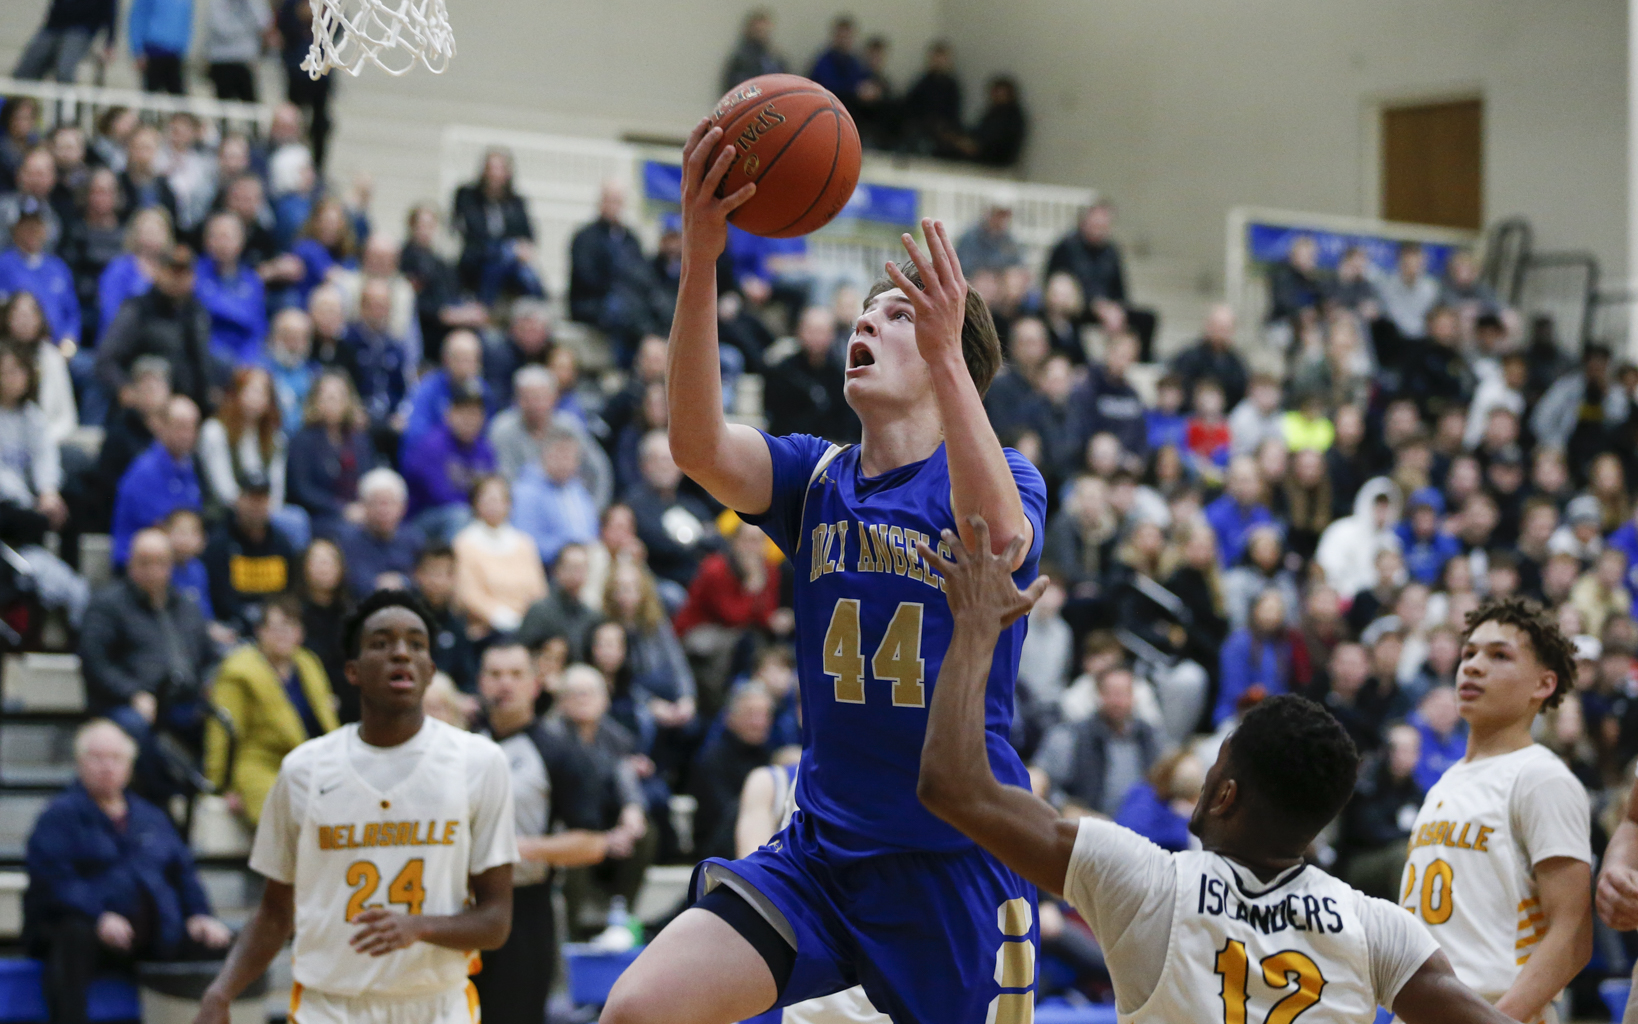 Holy Angels' Matt Banovetz (44) goes up for two of his 26 points against DeLaSalle Friday night. Banovetz eclipsed the 1000 point mark in the Stars' 59-56 loss to the Islanders in Richfield. Photo by Jeff Lawler, SportsEngine